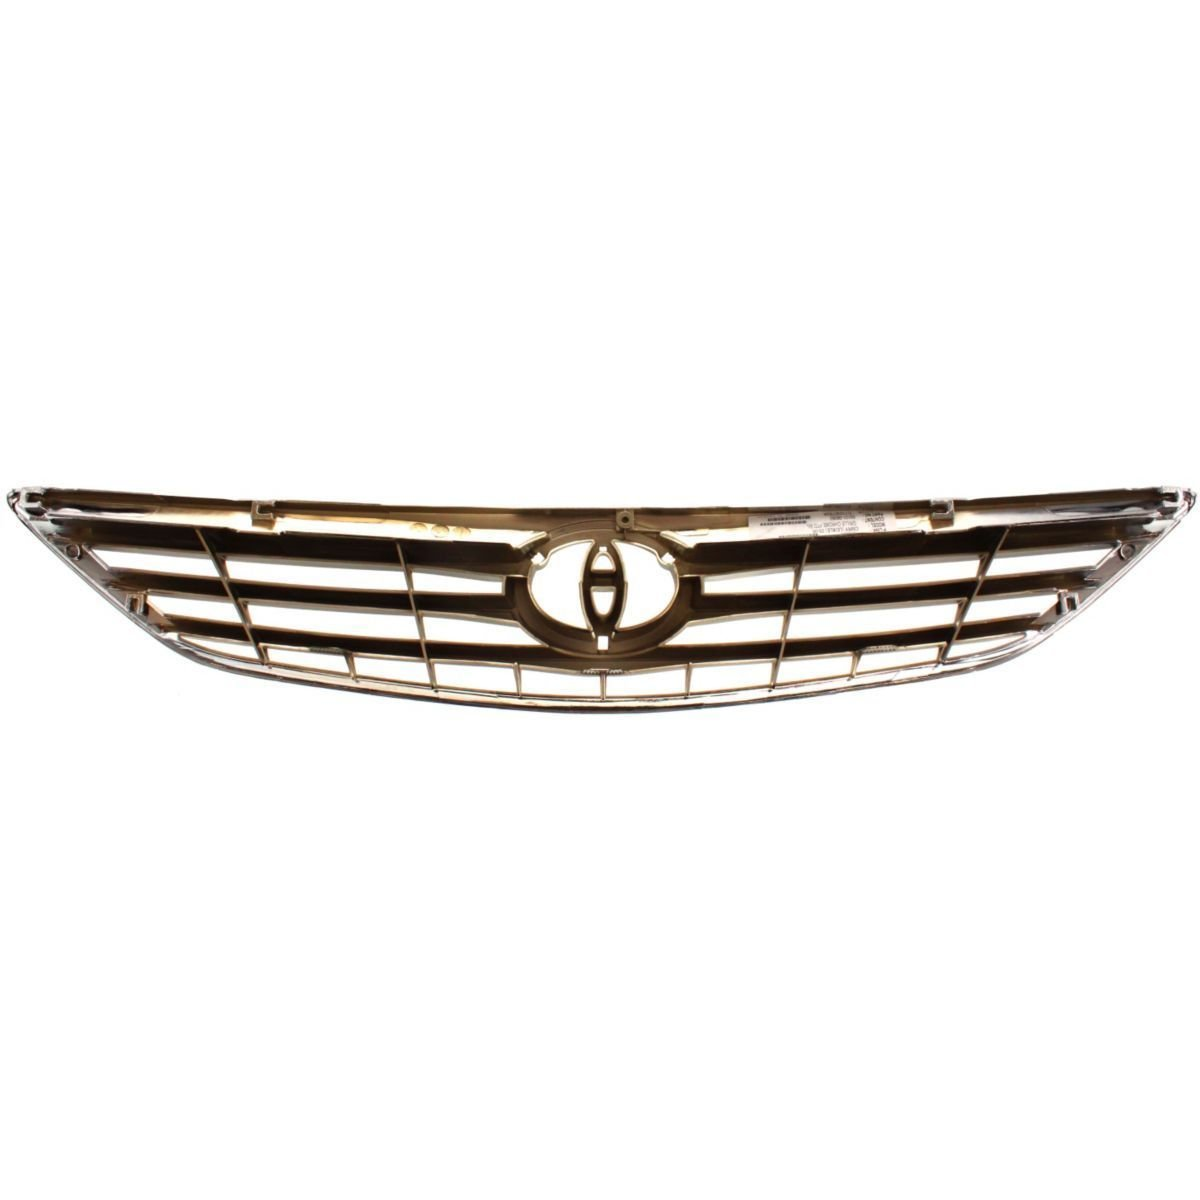 Diften 102-A7604-X01 New Grille Assembly Grill Chrome shell silver insert Camry TO1200267 5310106050